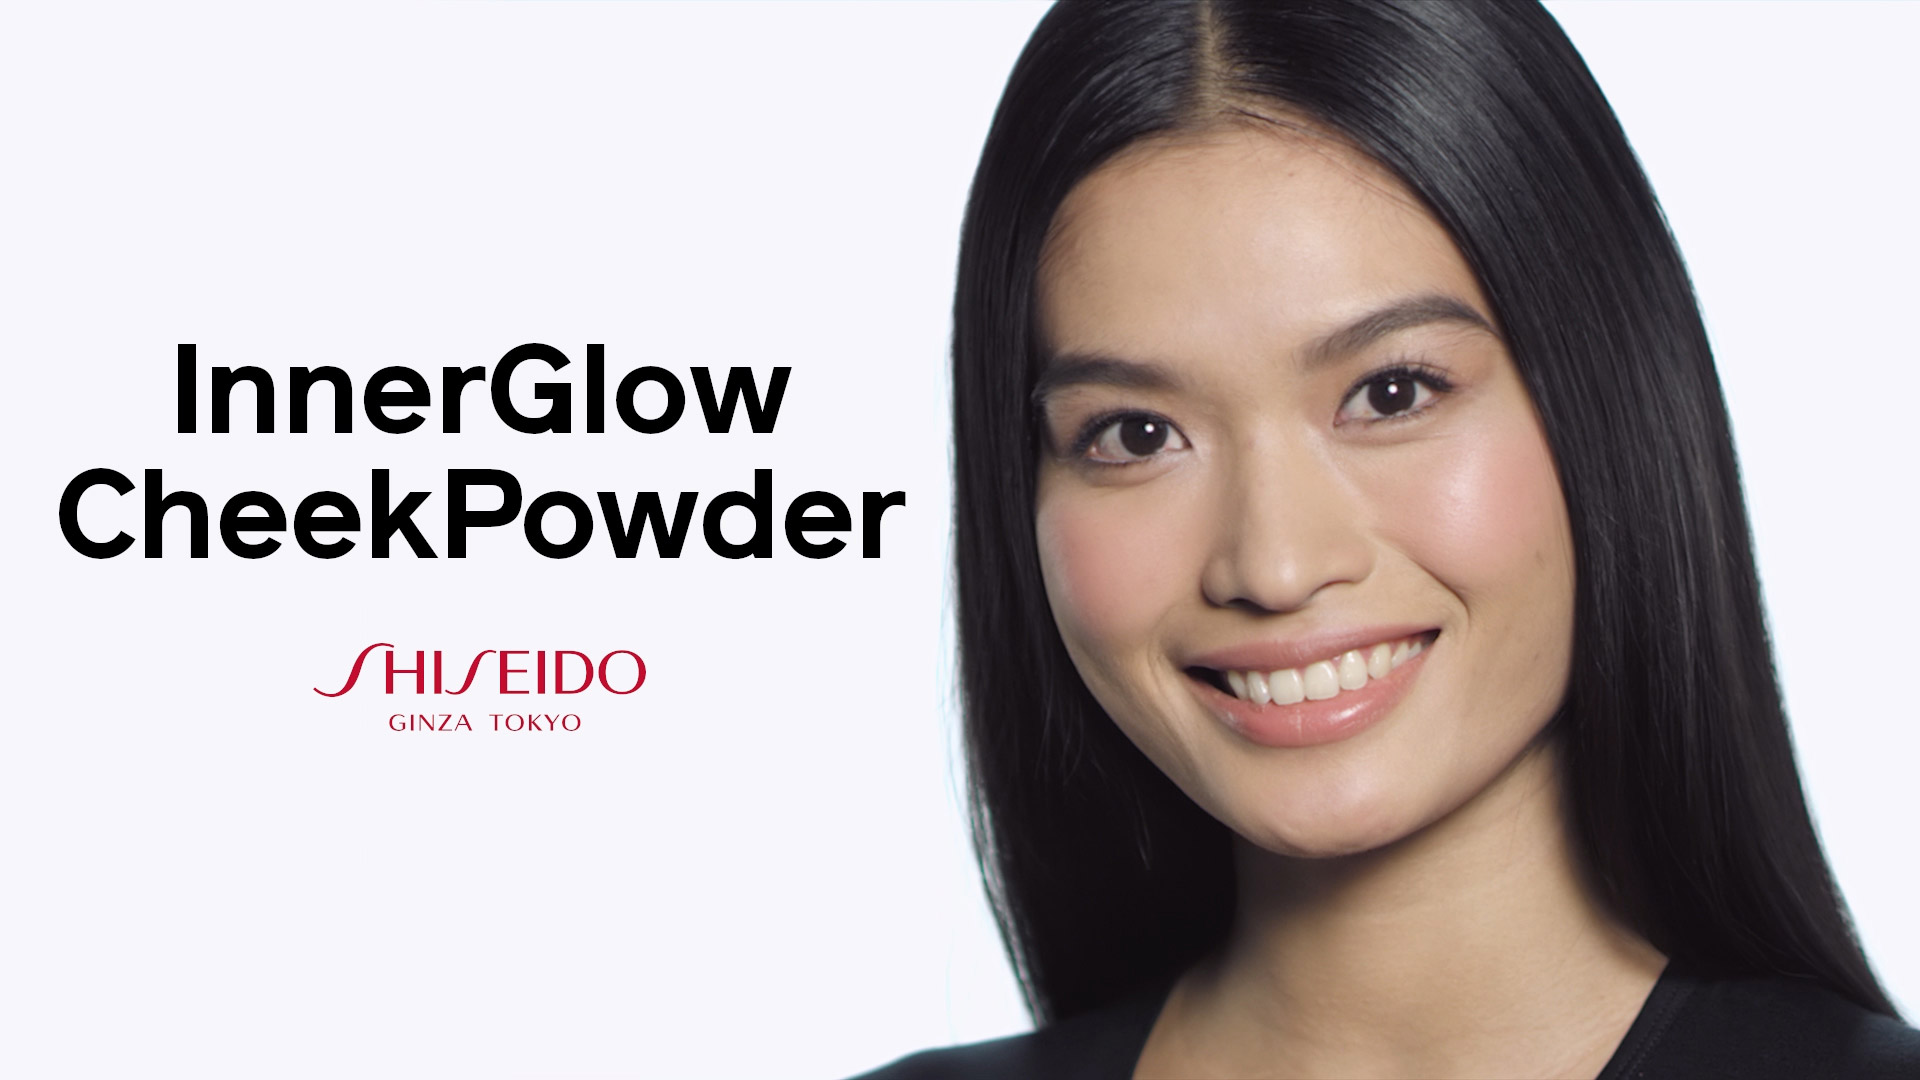 InnerGlow CheekPowder